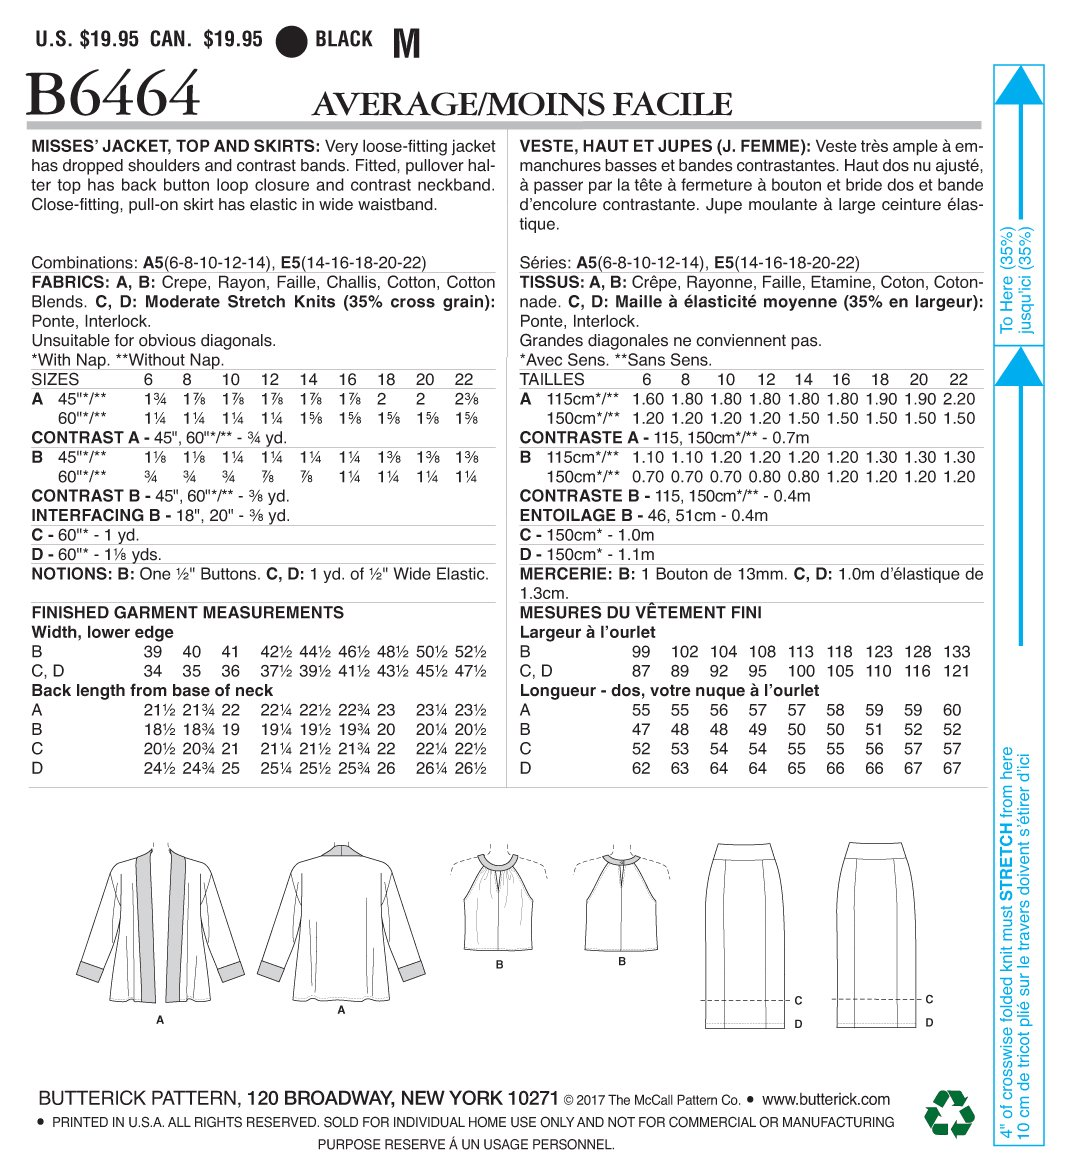 Butterick Patterns 6464 E5,Misses Jacket,Top and Skirts,Sizes 14-22 17 x 0.5 x 22 cm Tissue Multicoloured